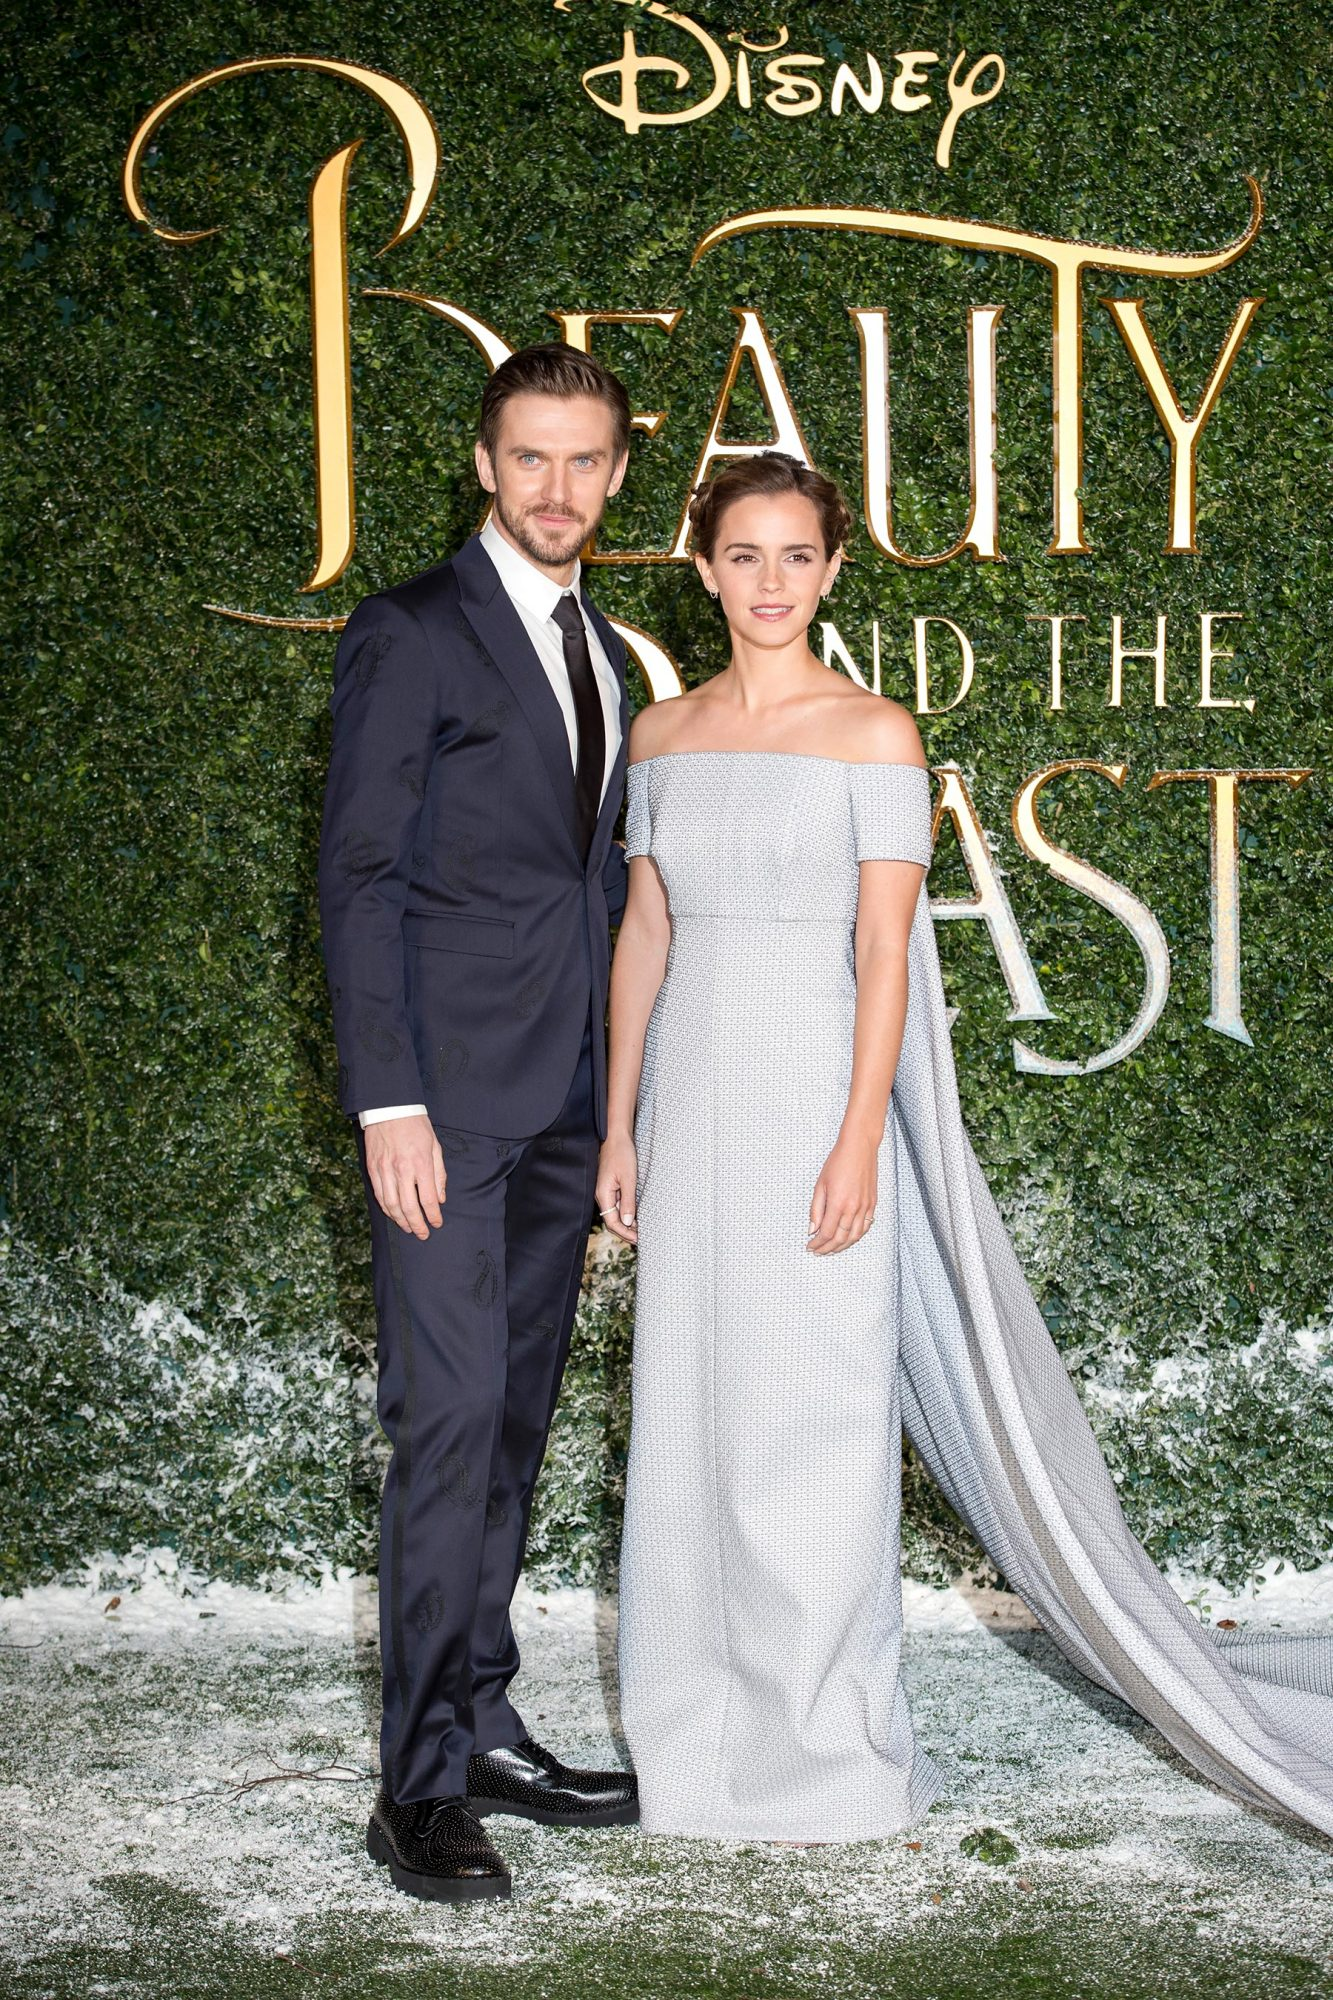 Beauty And The Beast London Premiere Red Carpet Arrivals Ew Com